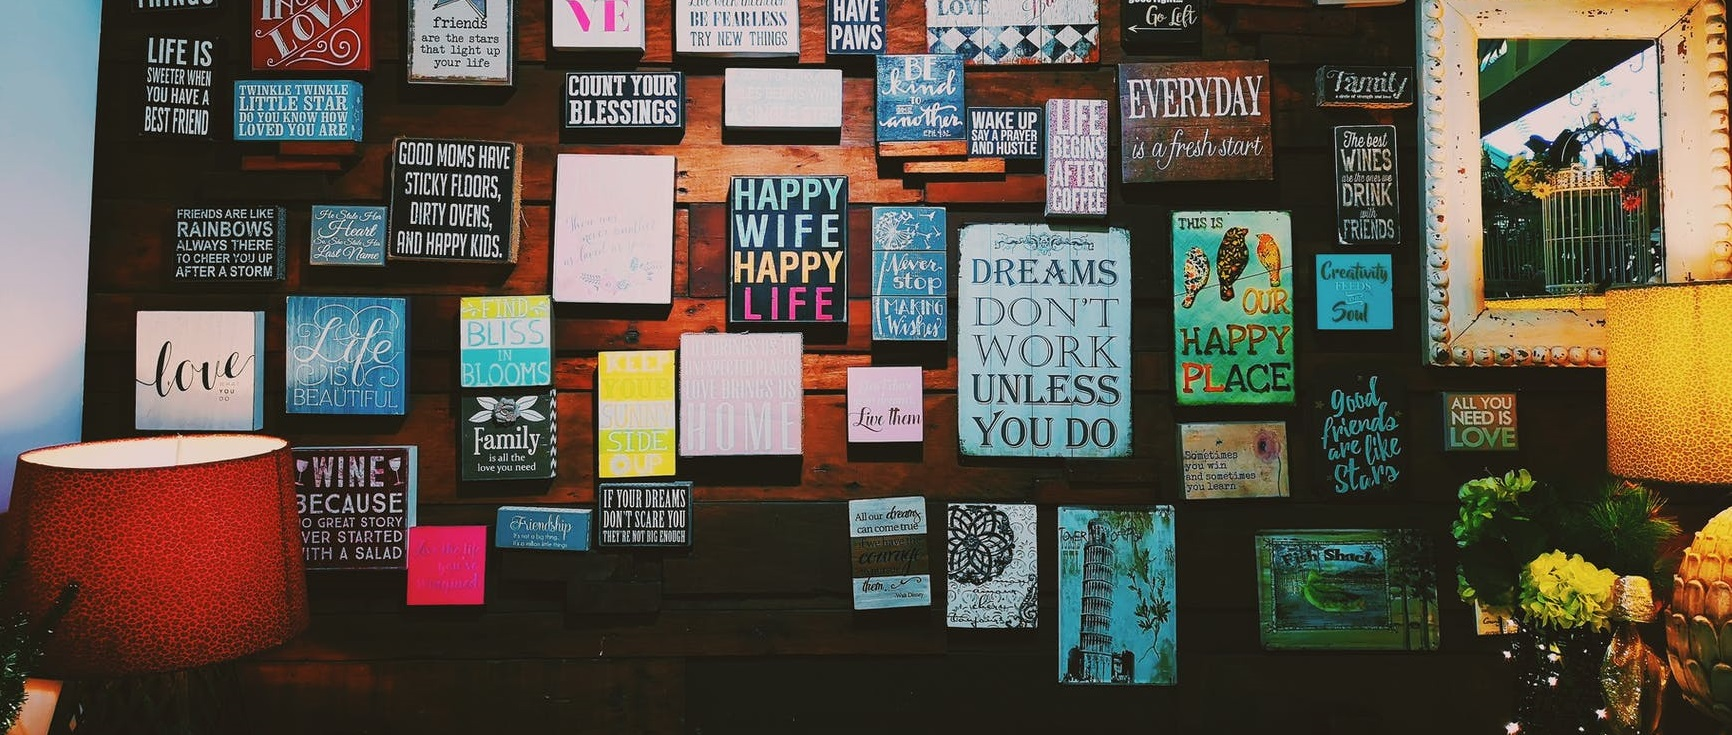 Self-affirmations displayed on a wall.